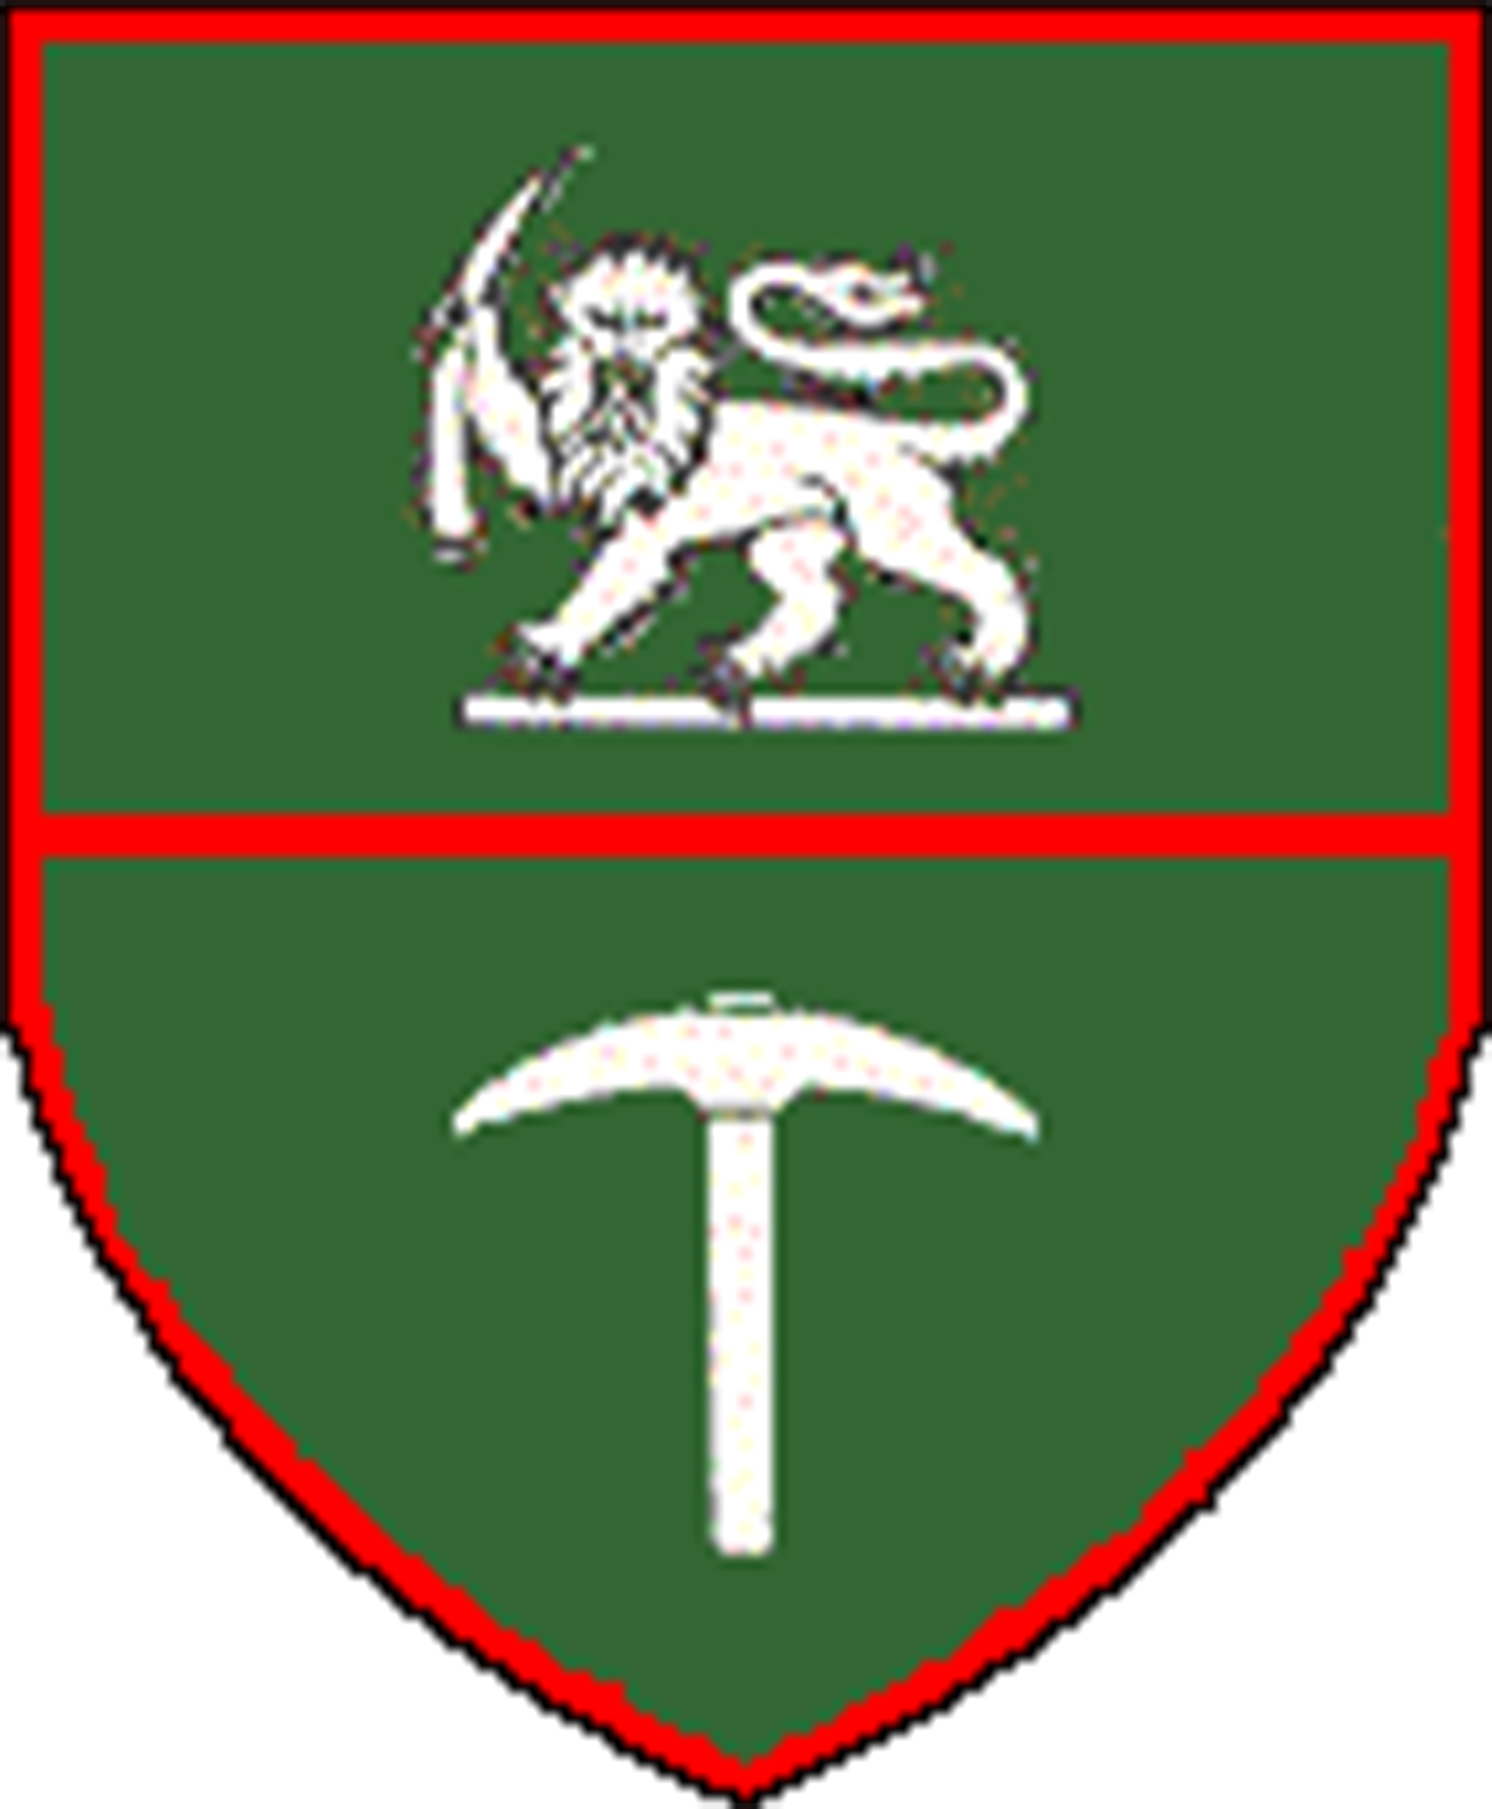 Rhodesian army crest which is the right side logo of the Rhodesia Army Association logo